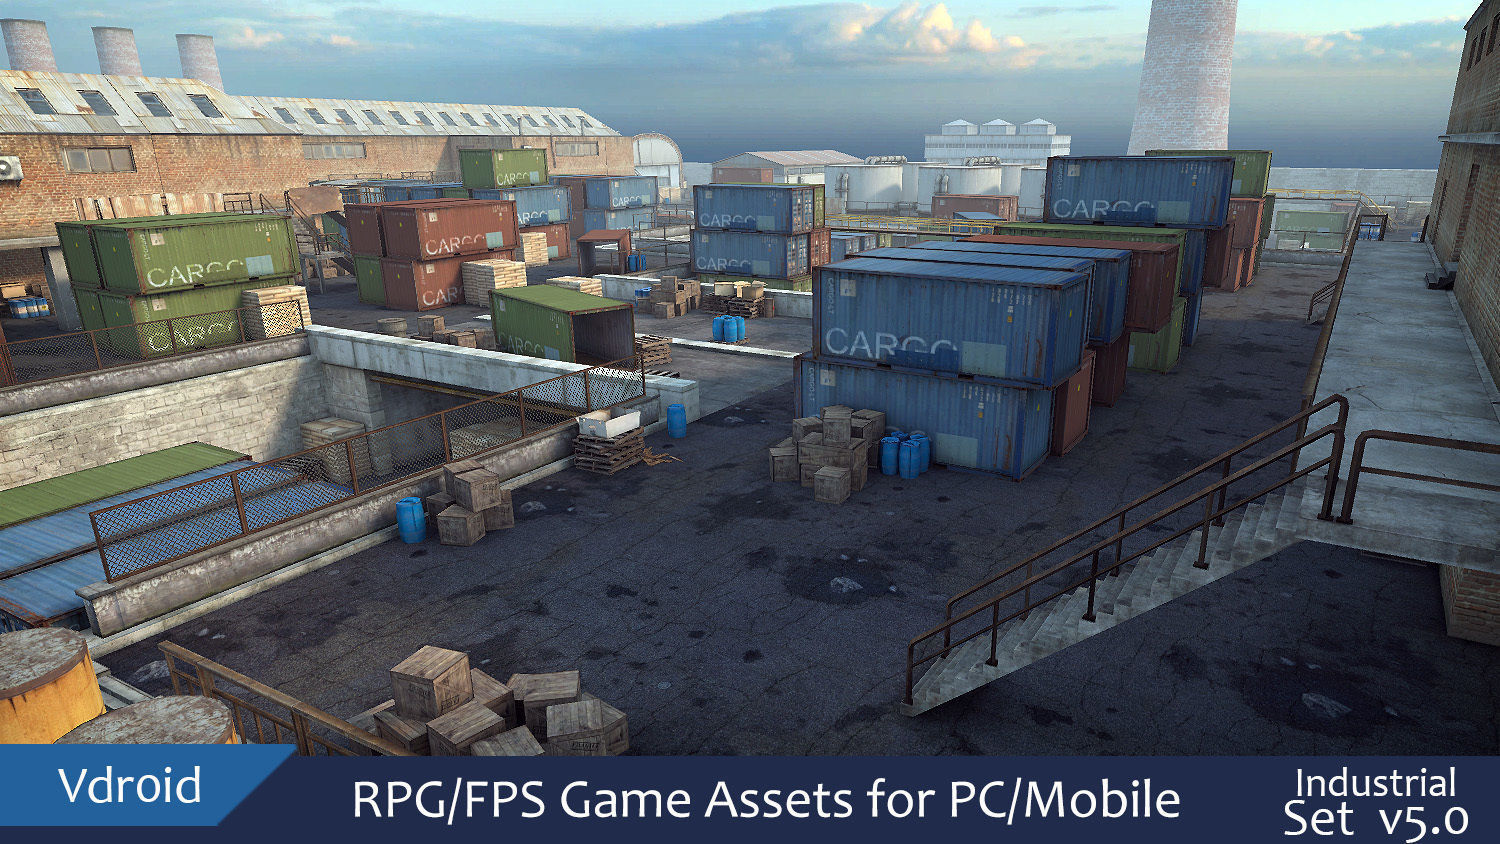 RPG FPS Game Assets for PC Mobile Industrial Set v5